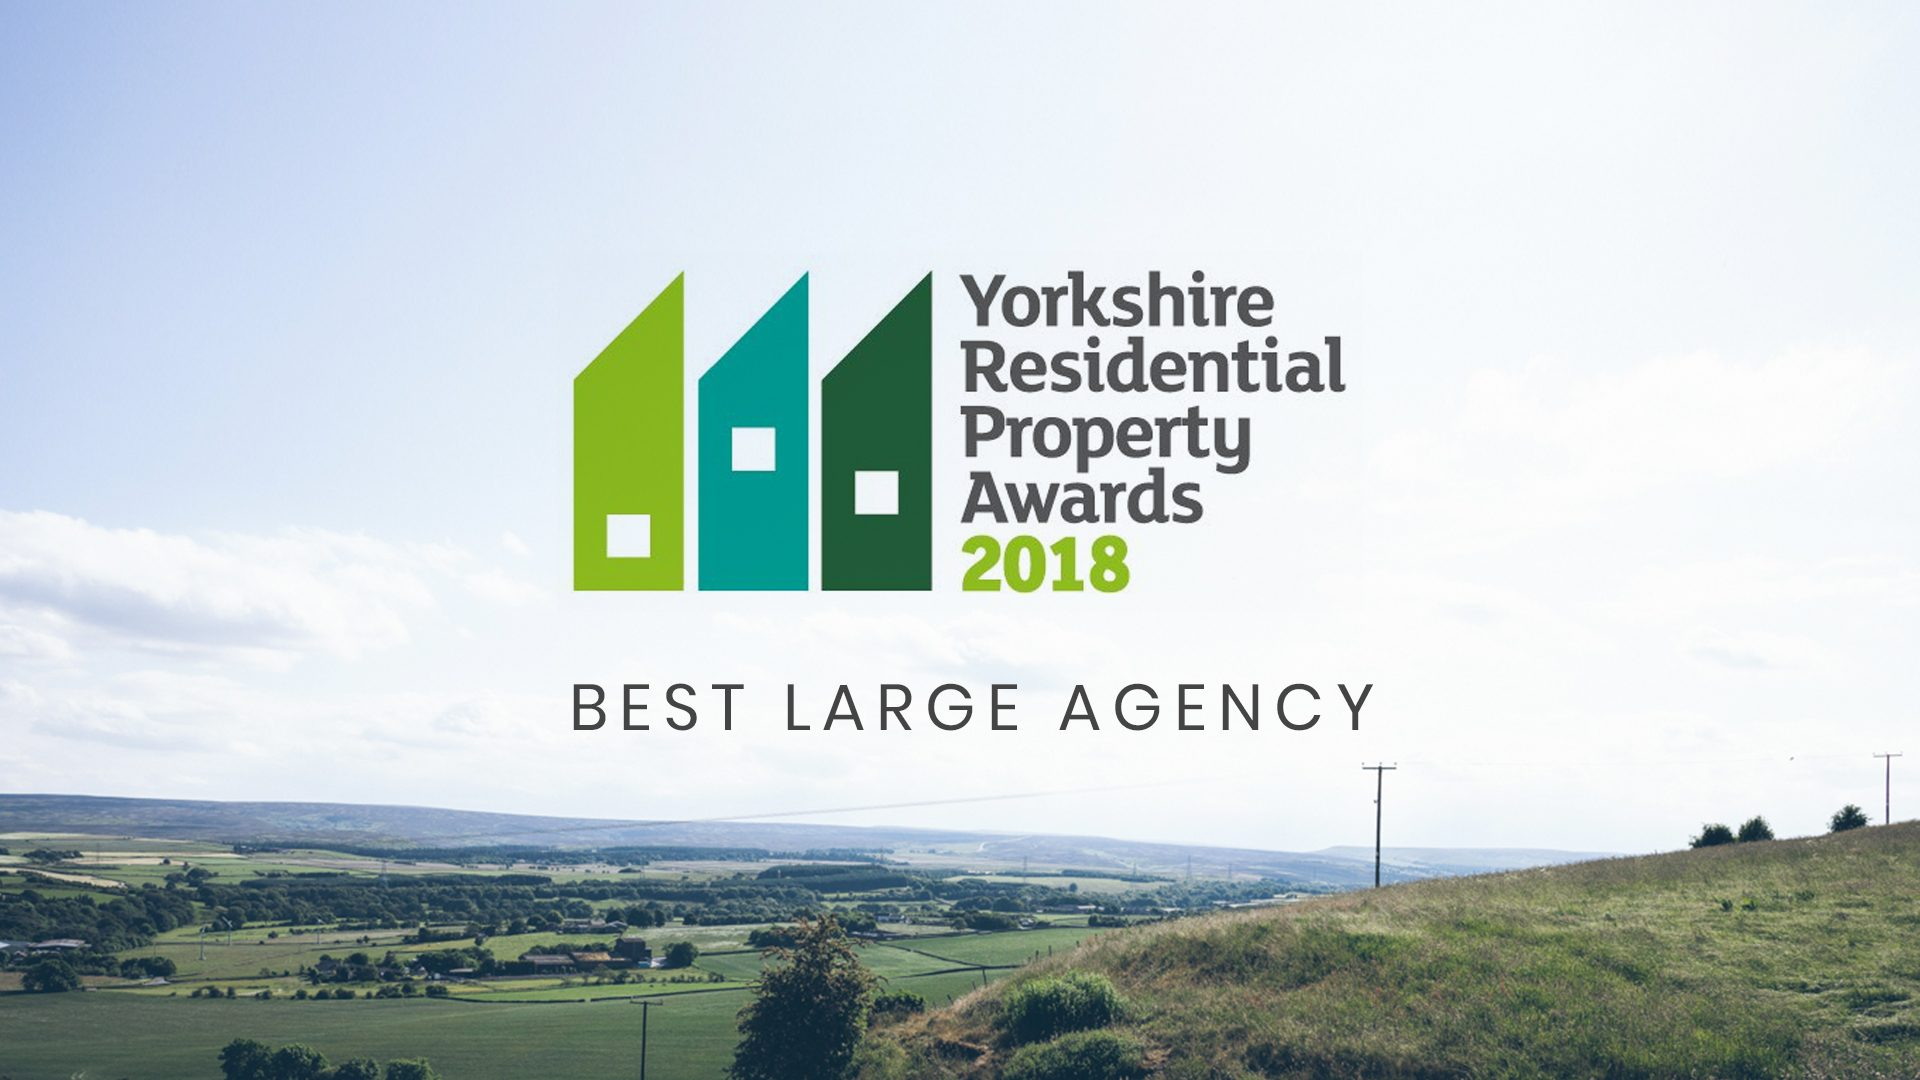 Yorkshire Residential Property Awards 2018 Winners